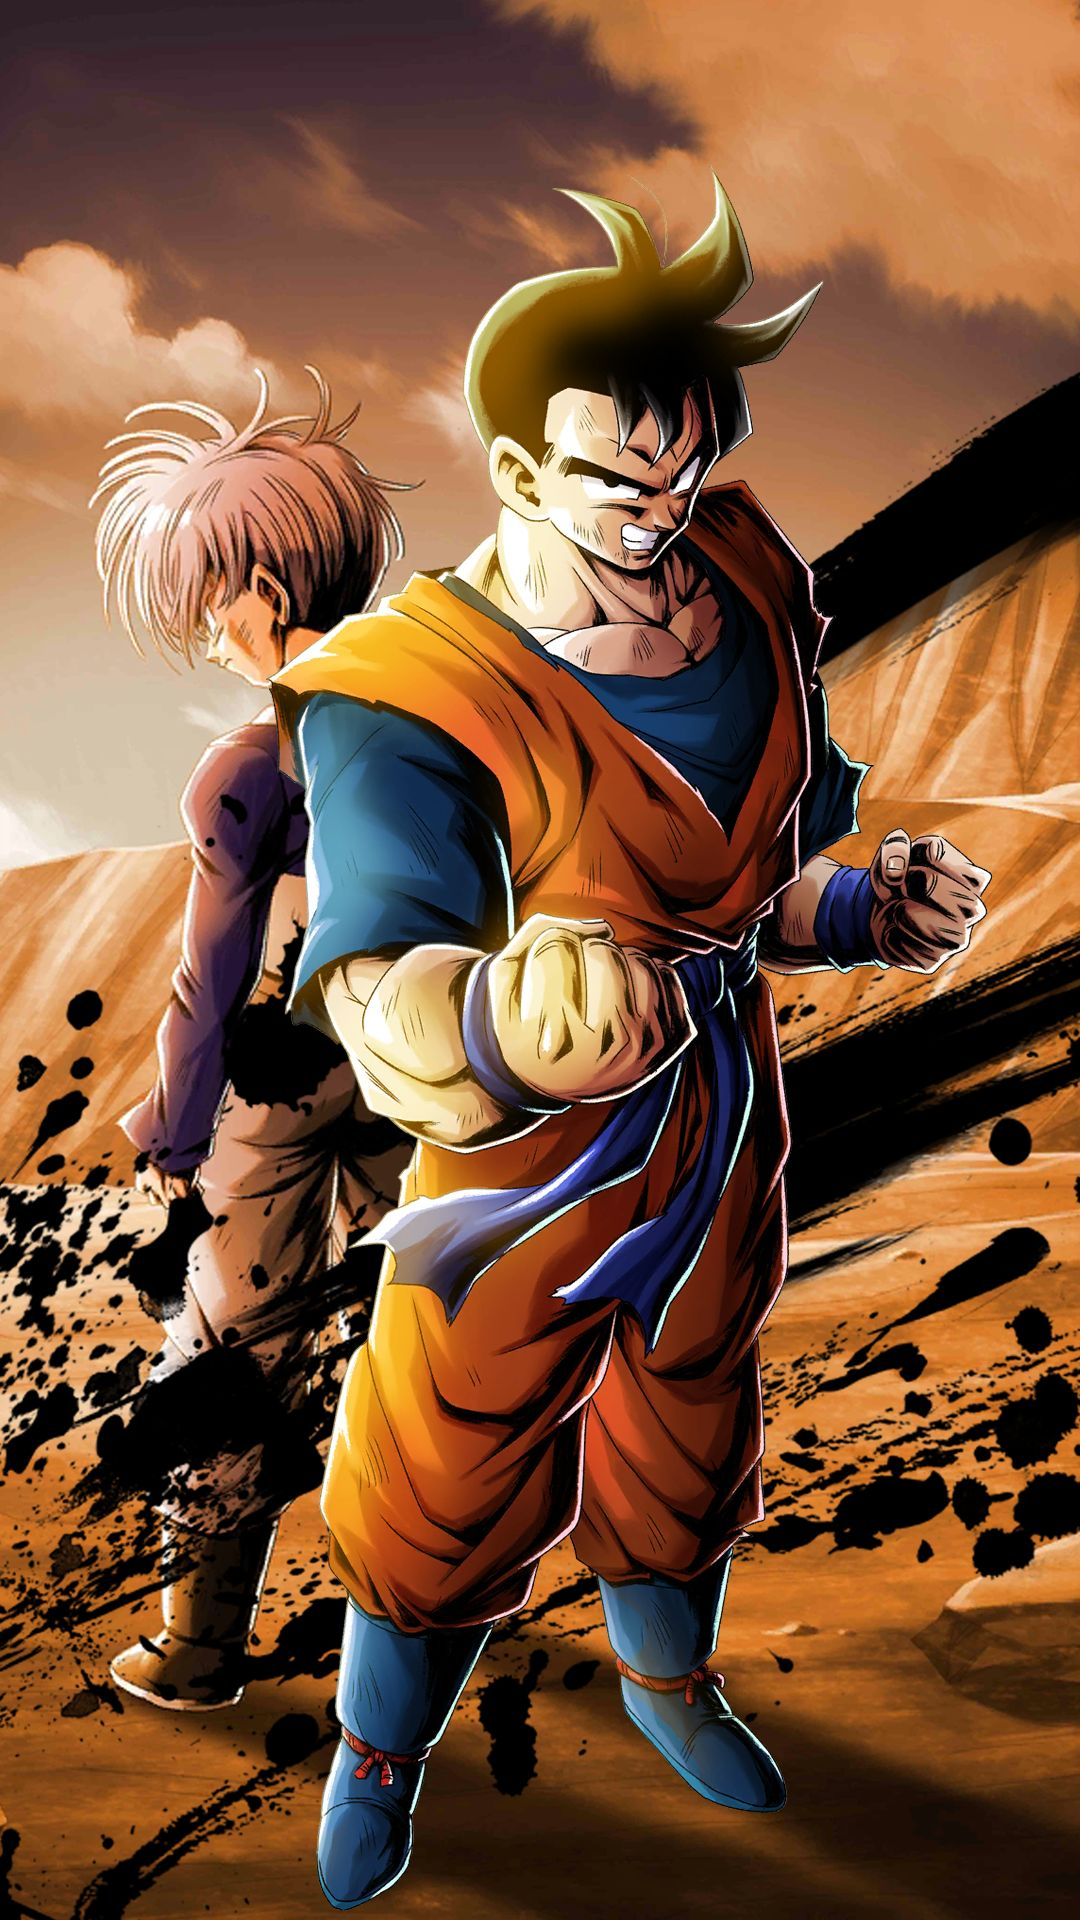 Gohan wallpaper for mobile